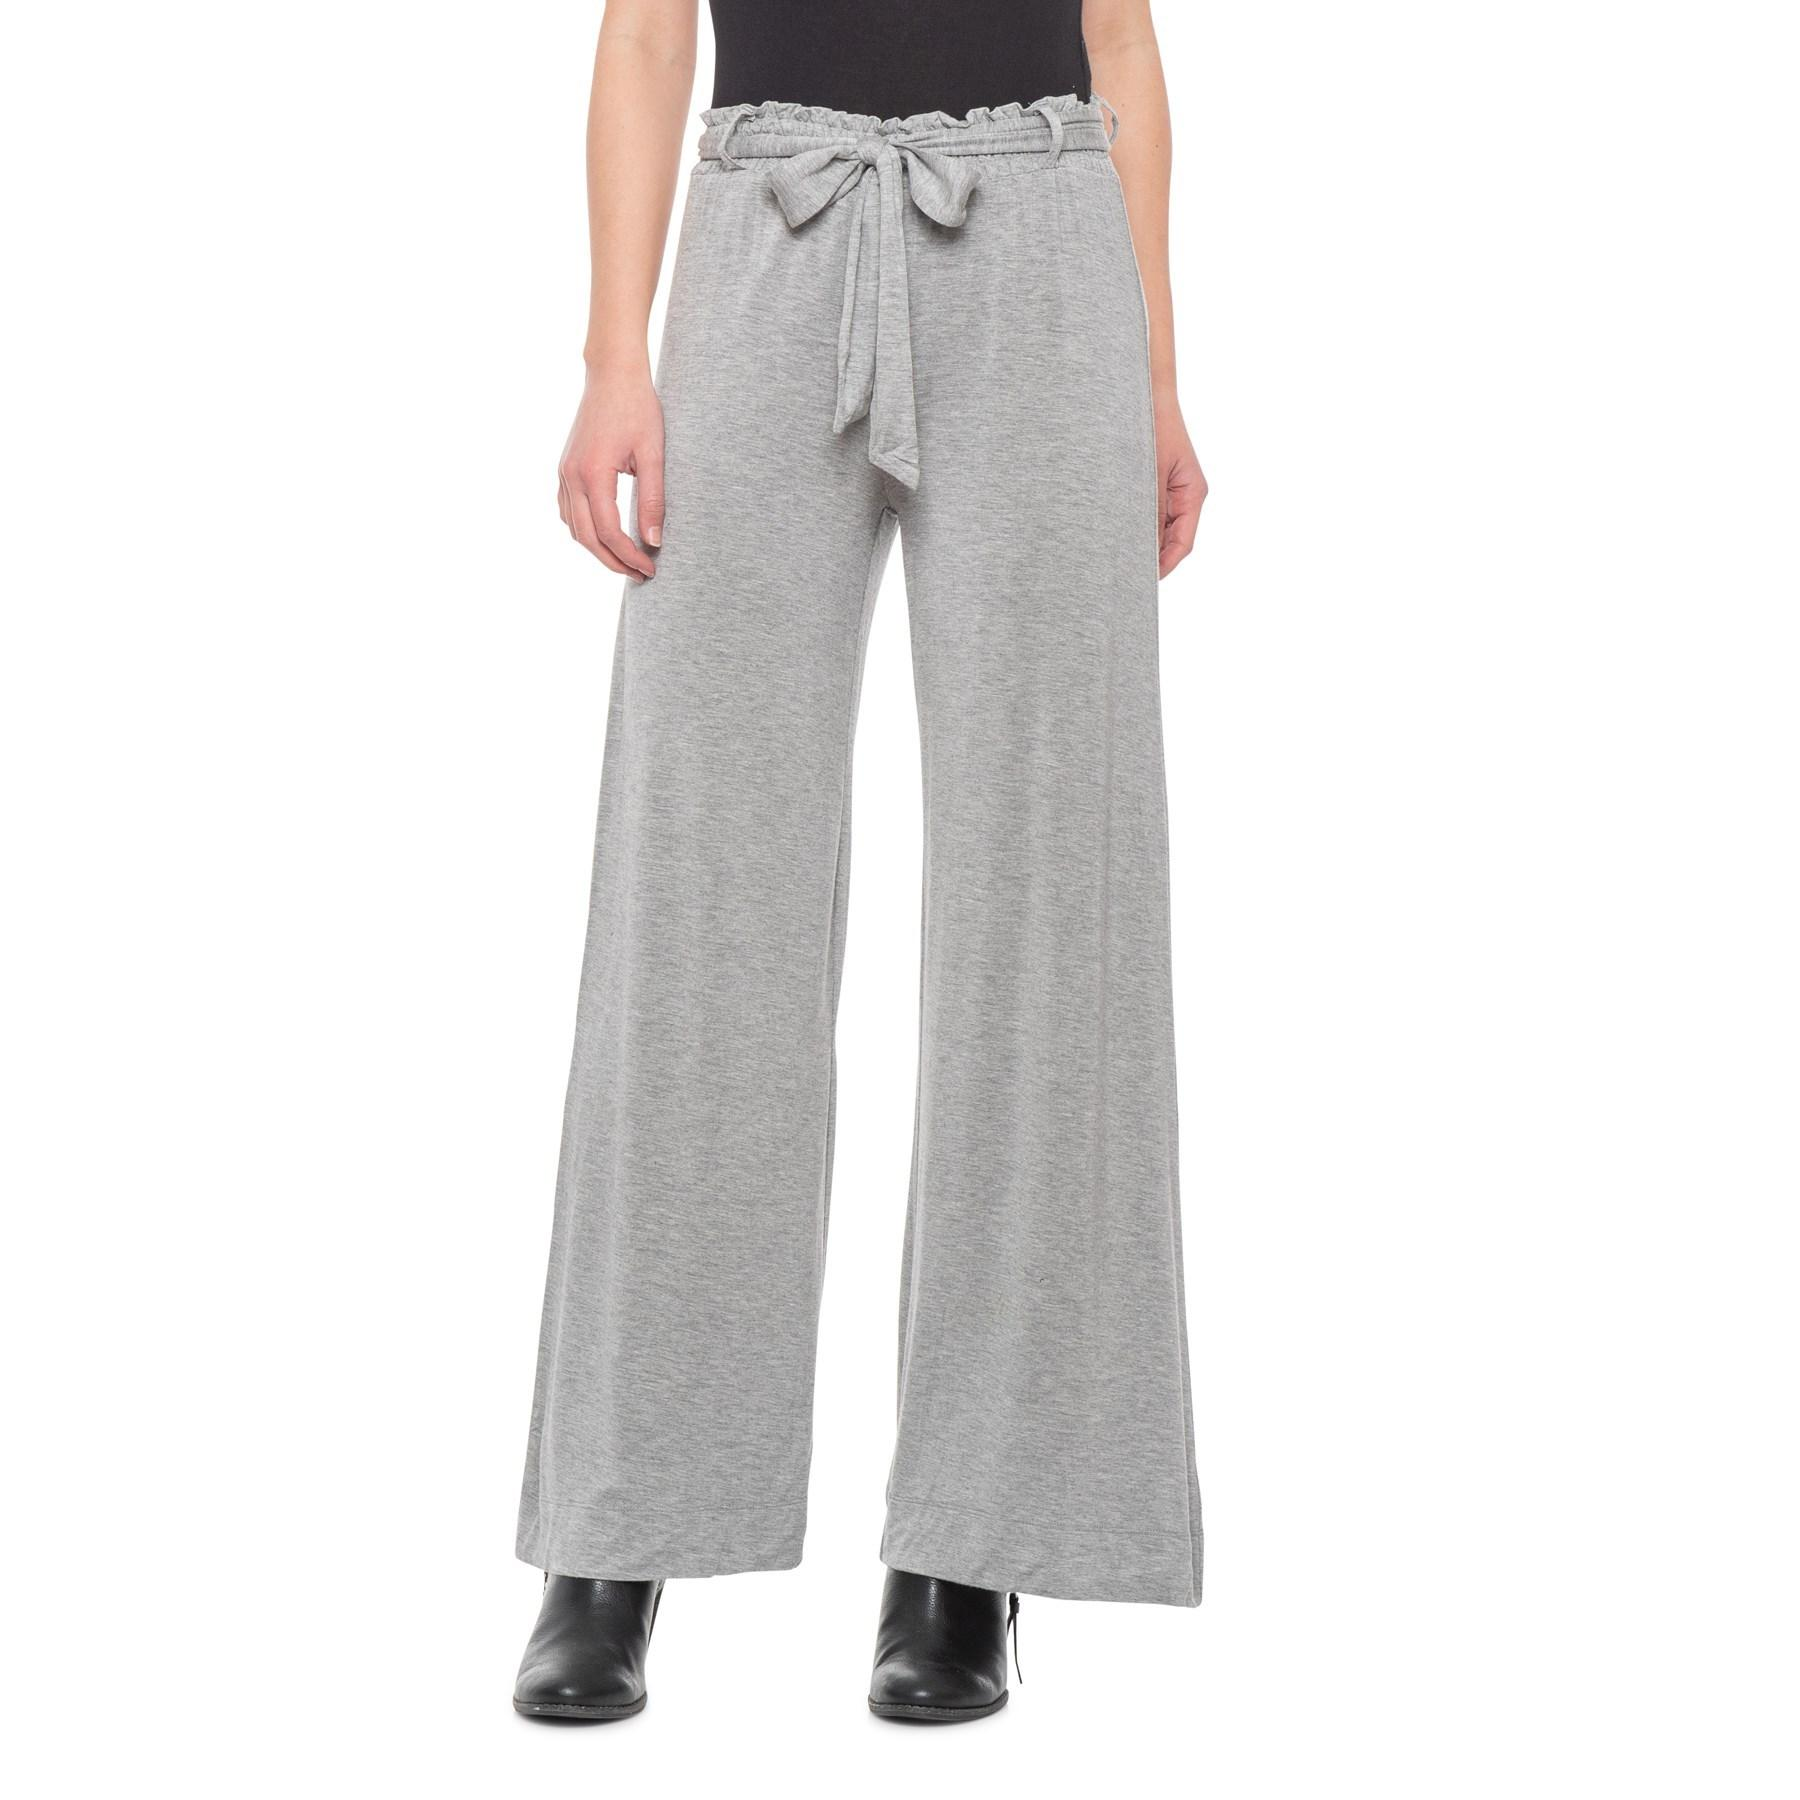 6ad18a7c20 Lyst - Chaser Heather Grey Wide-leg Knit Pants (for Women) in Gray